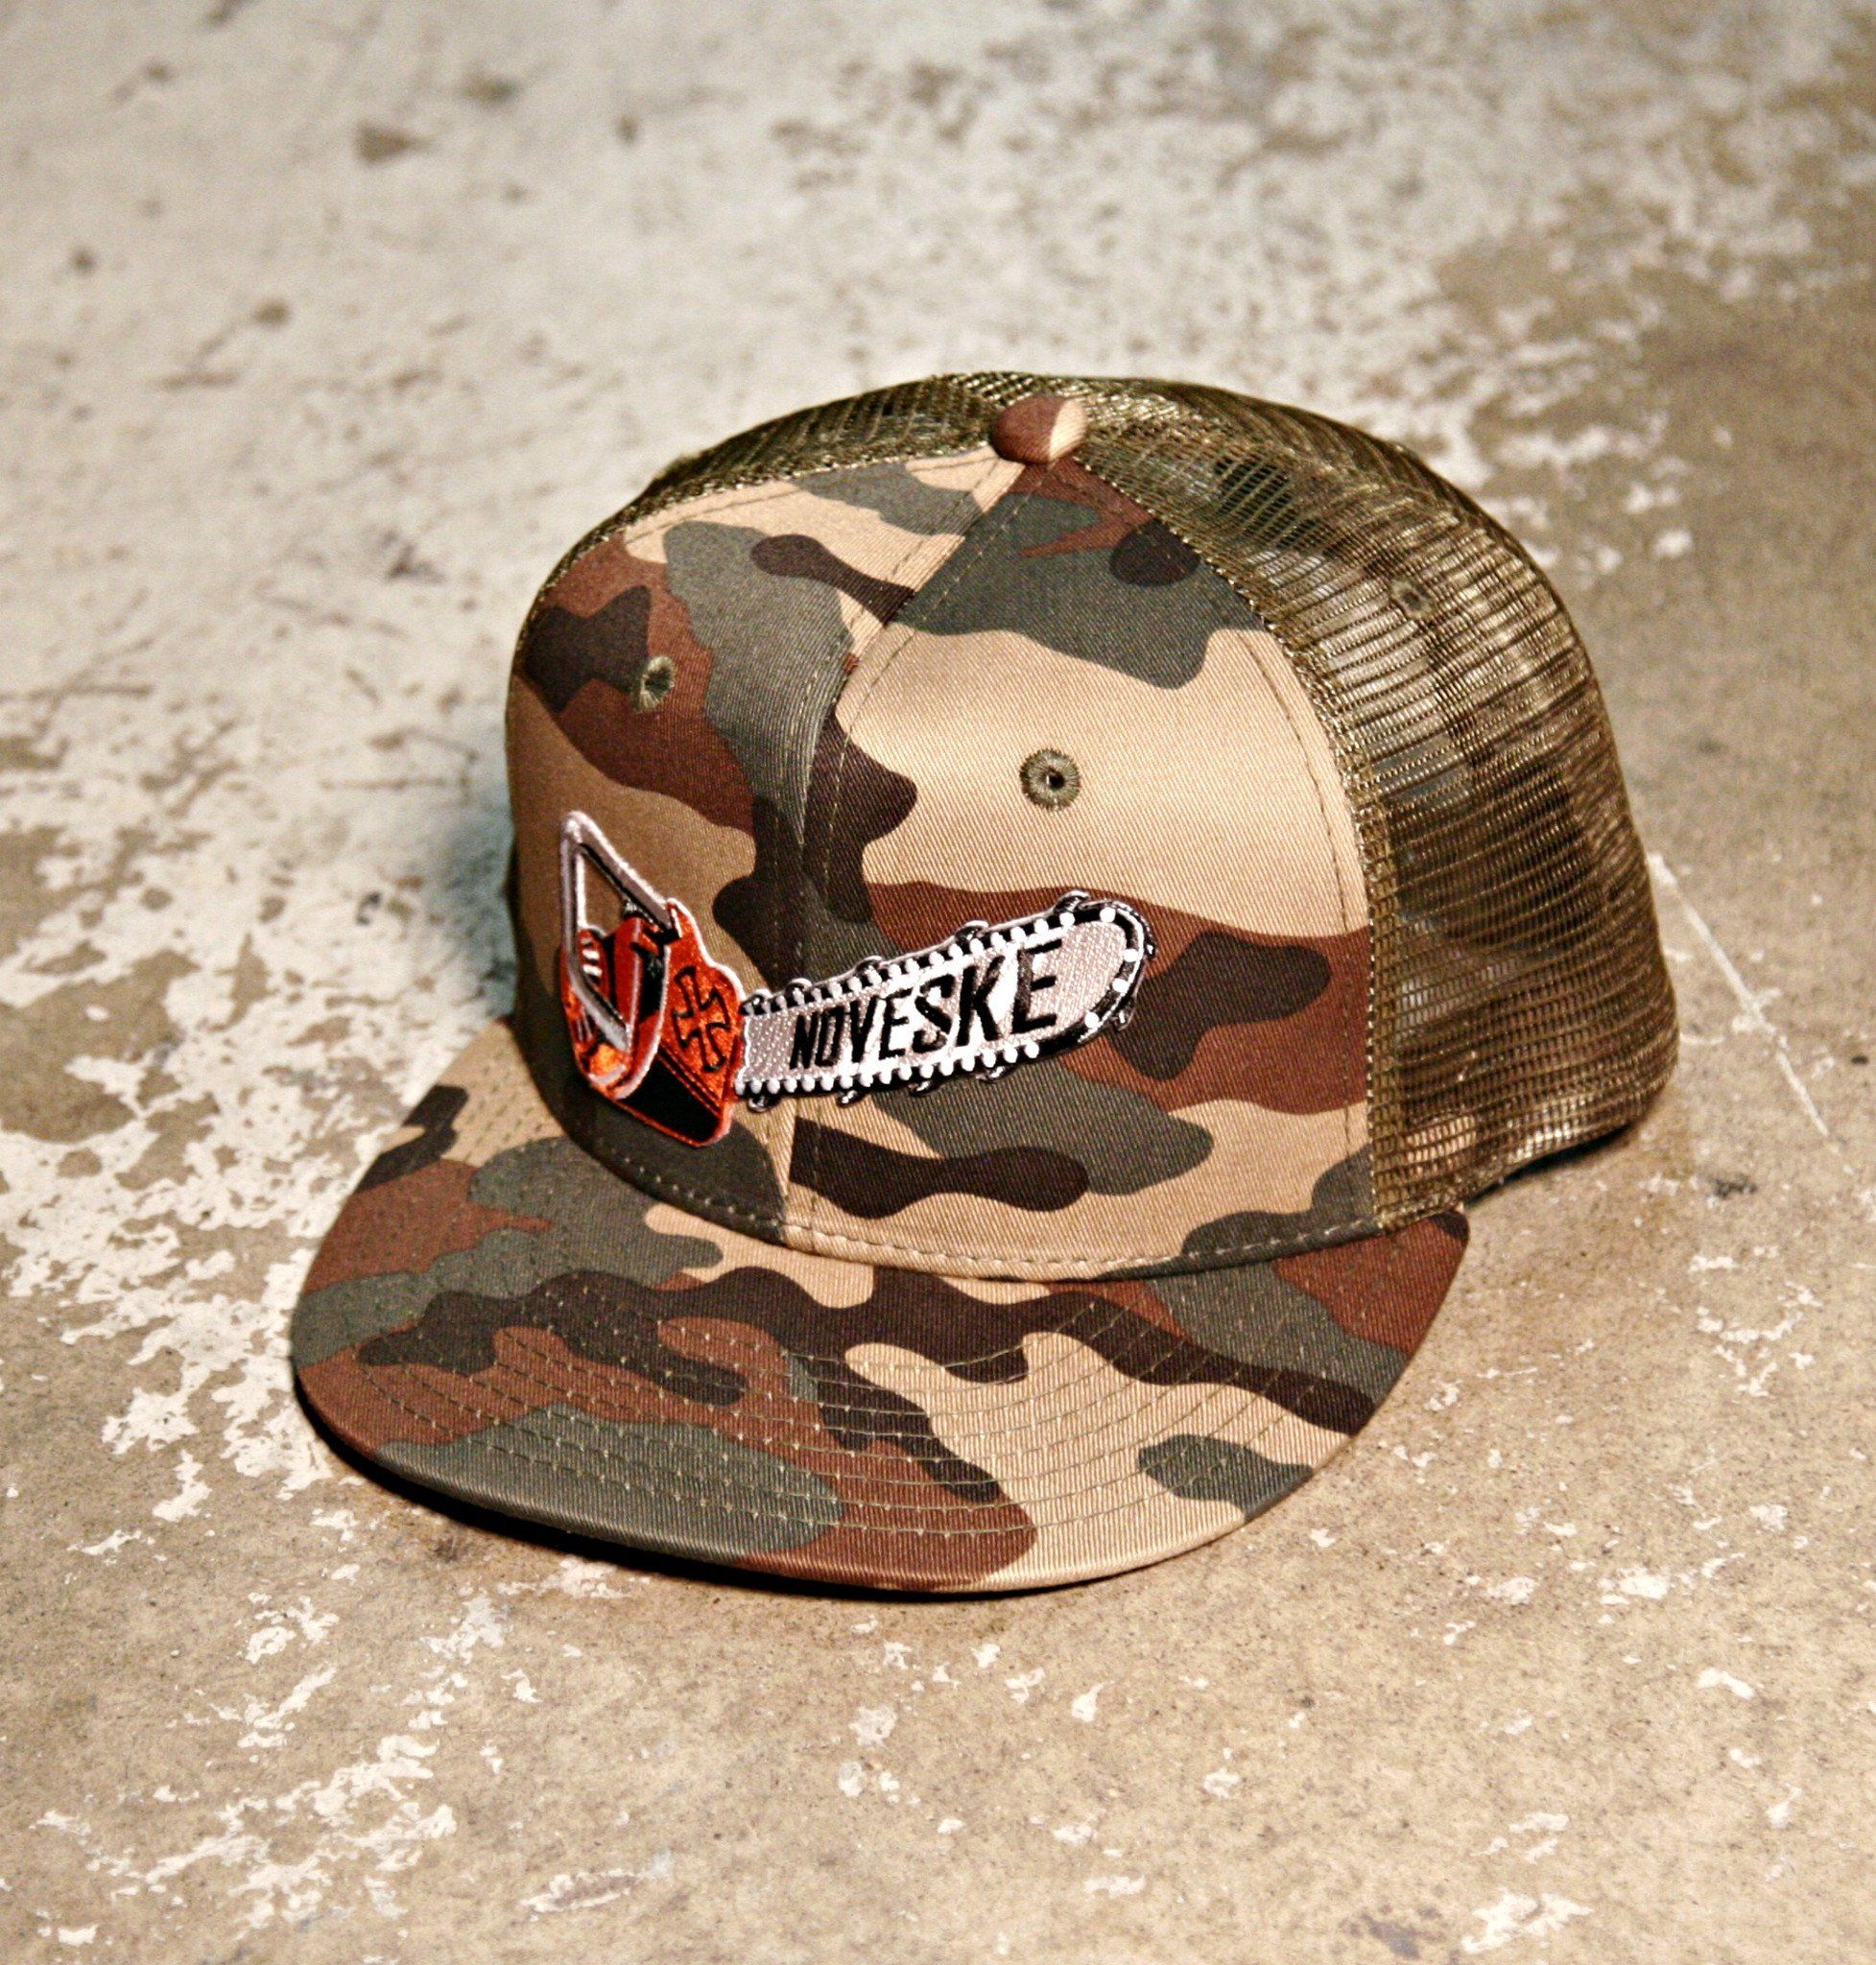 a2f3fc2d8dbb32 Noveske Chainsaw Camo Trucker Hat from NOVESKE   My Style in 2019 ...